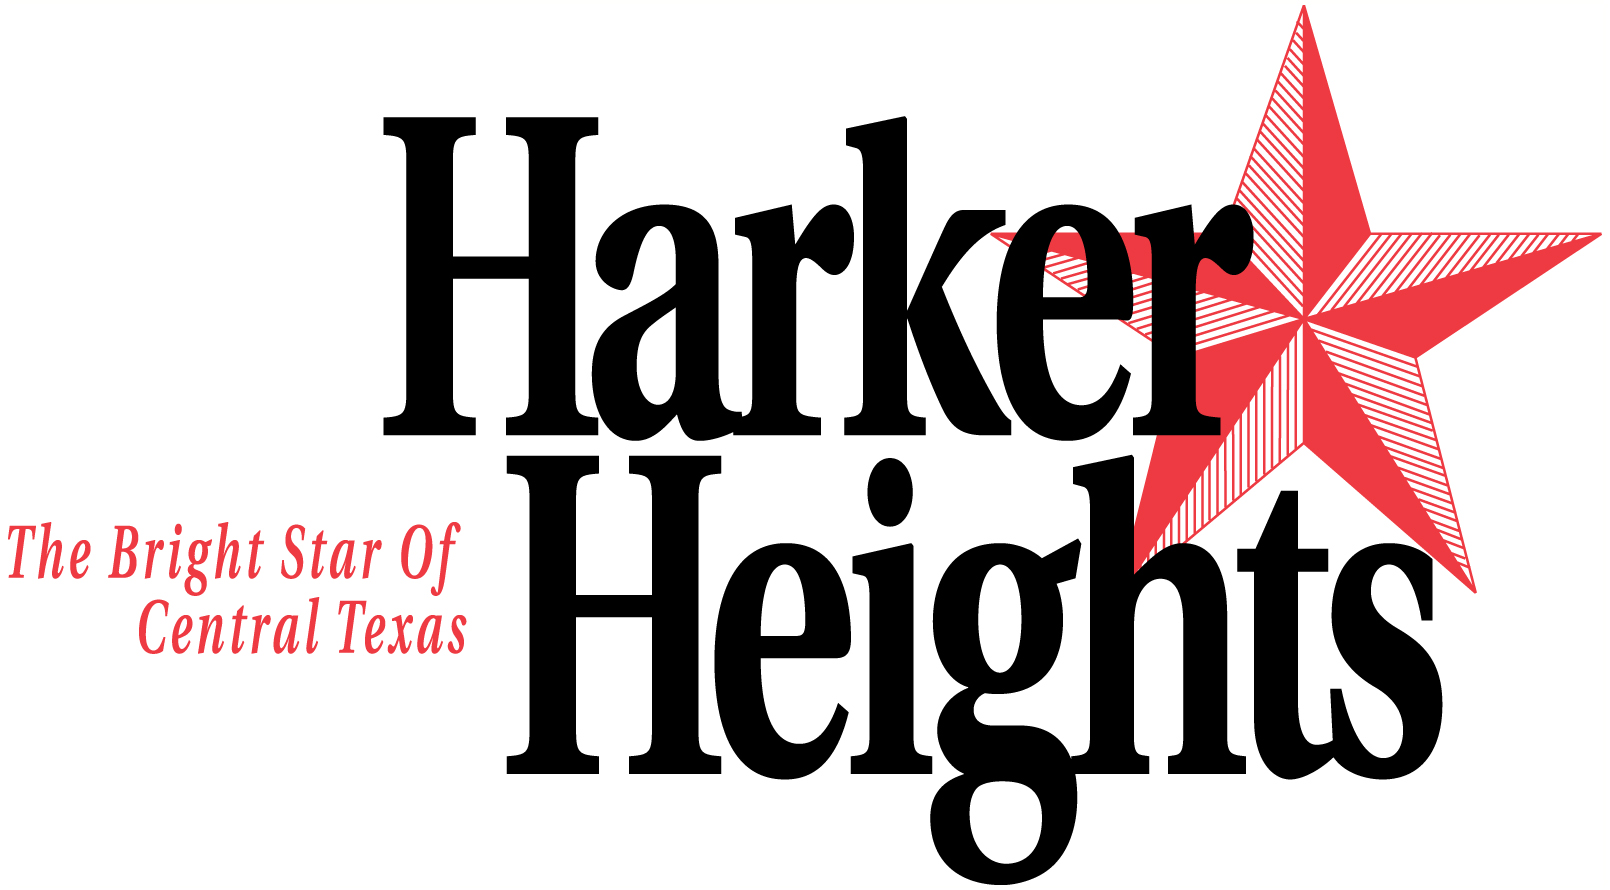 Harker Heights white